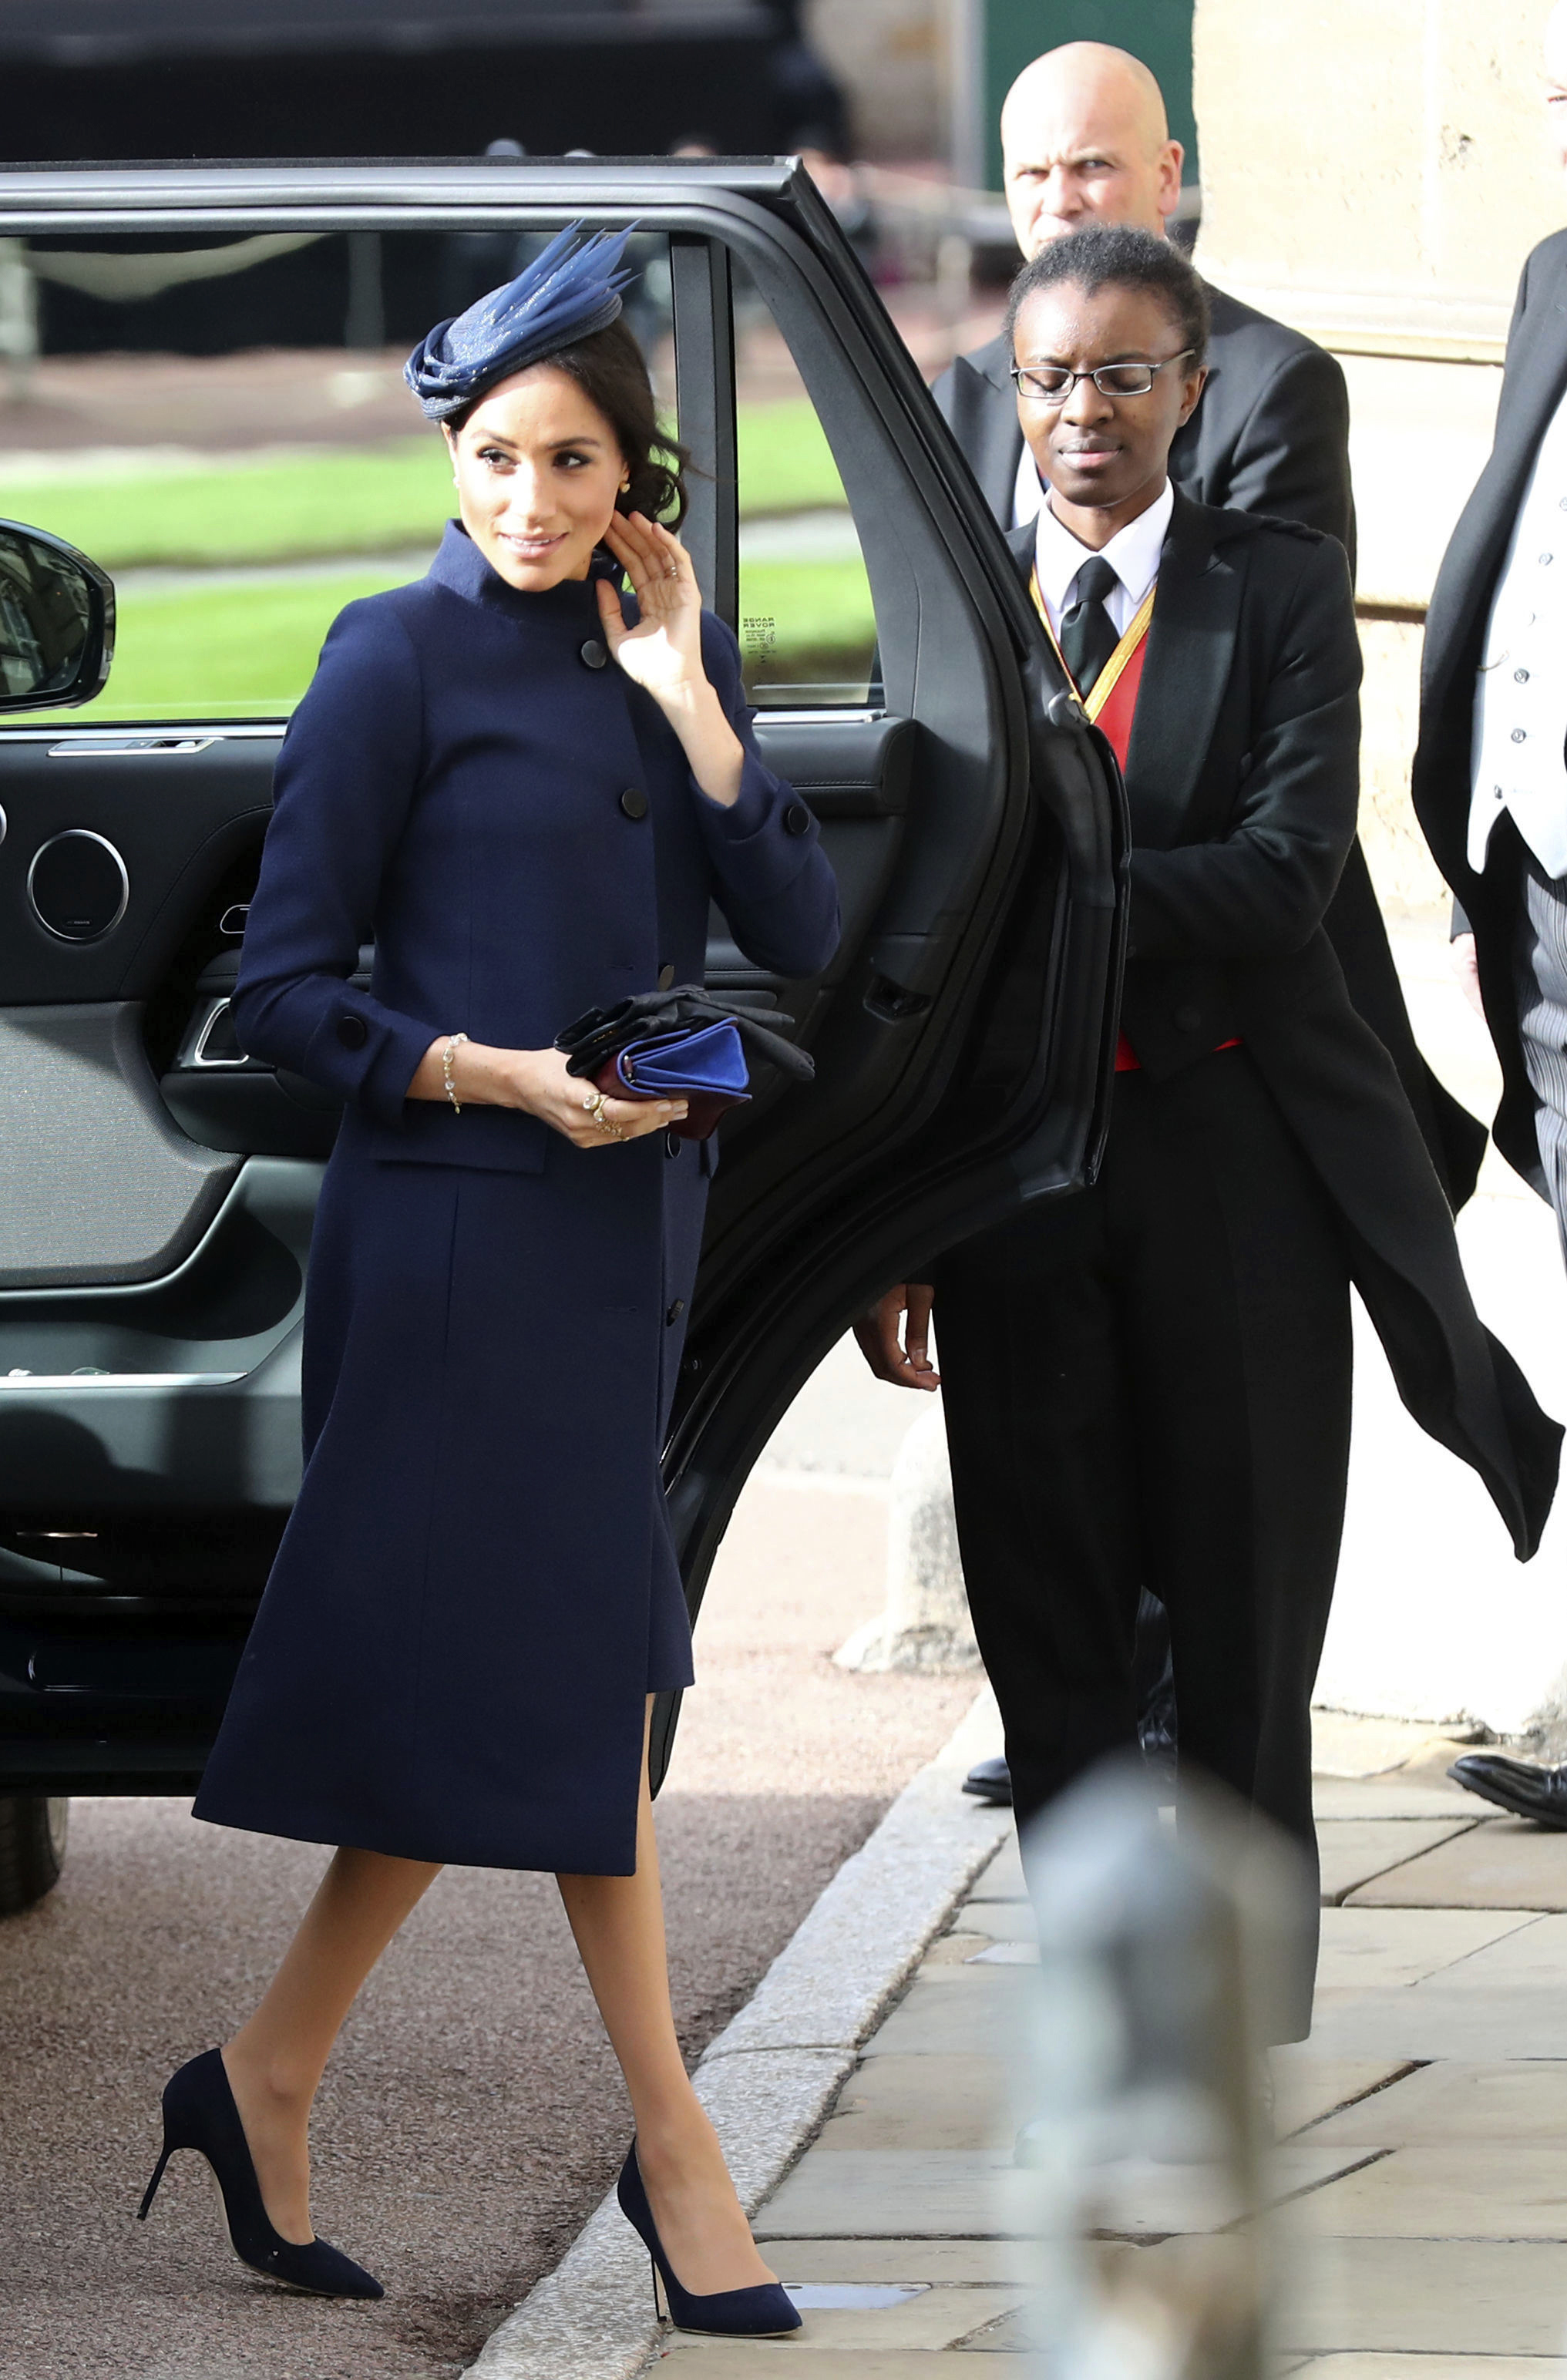 <div class='meta'><div class='origin-logo' data-origin='none'></div><span class='caption-text' data-credit='Gareth Fuller/Pool via AP'>Meghan, Duchess of Sussex arrives ahead of the wedding of Princess Eugenie of York and Jack Brooksbank at St George's Chapel, Windsor Castle, near London, England, on Oct. 12.</span></div>